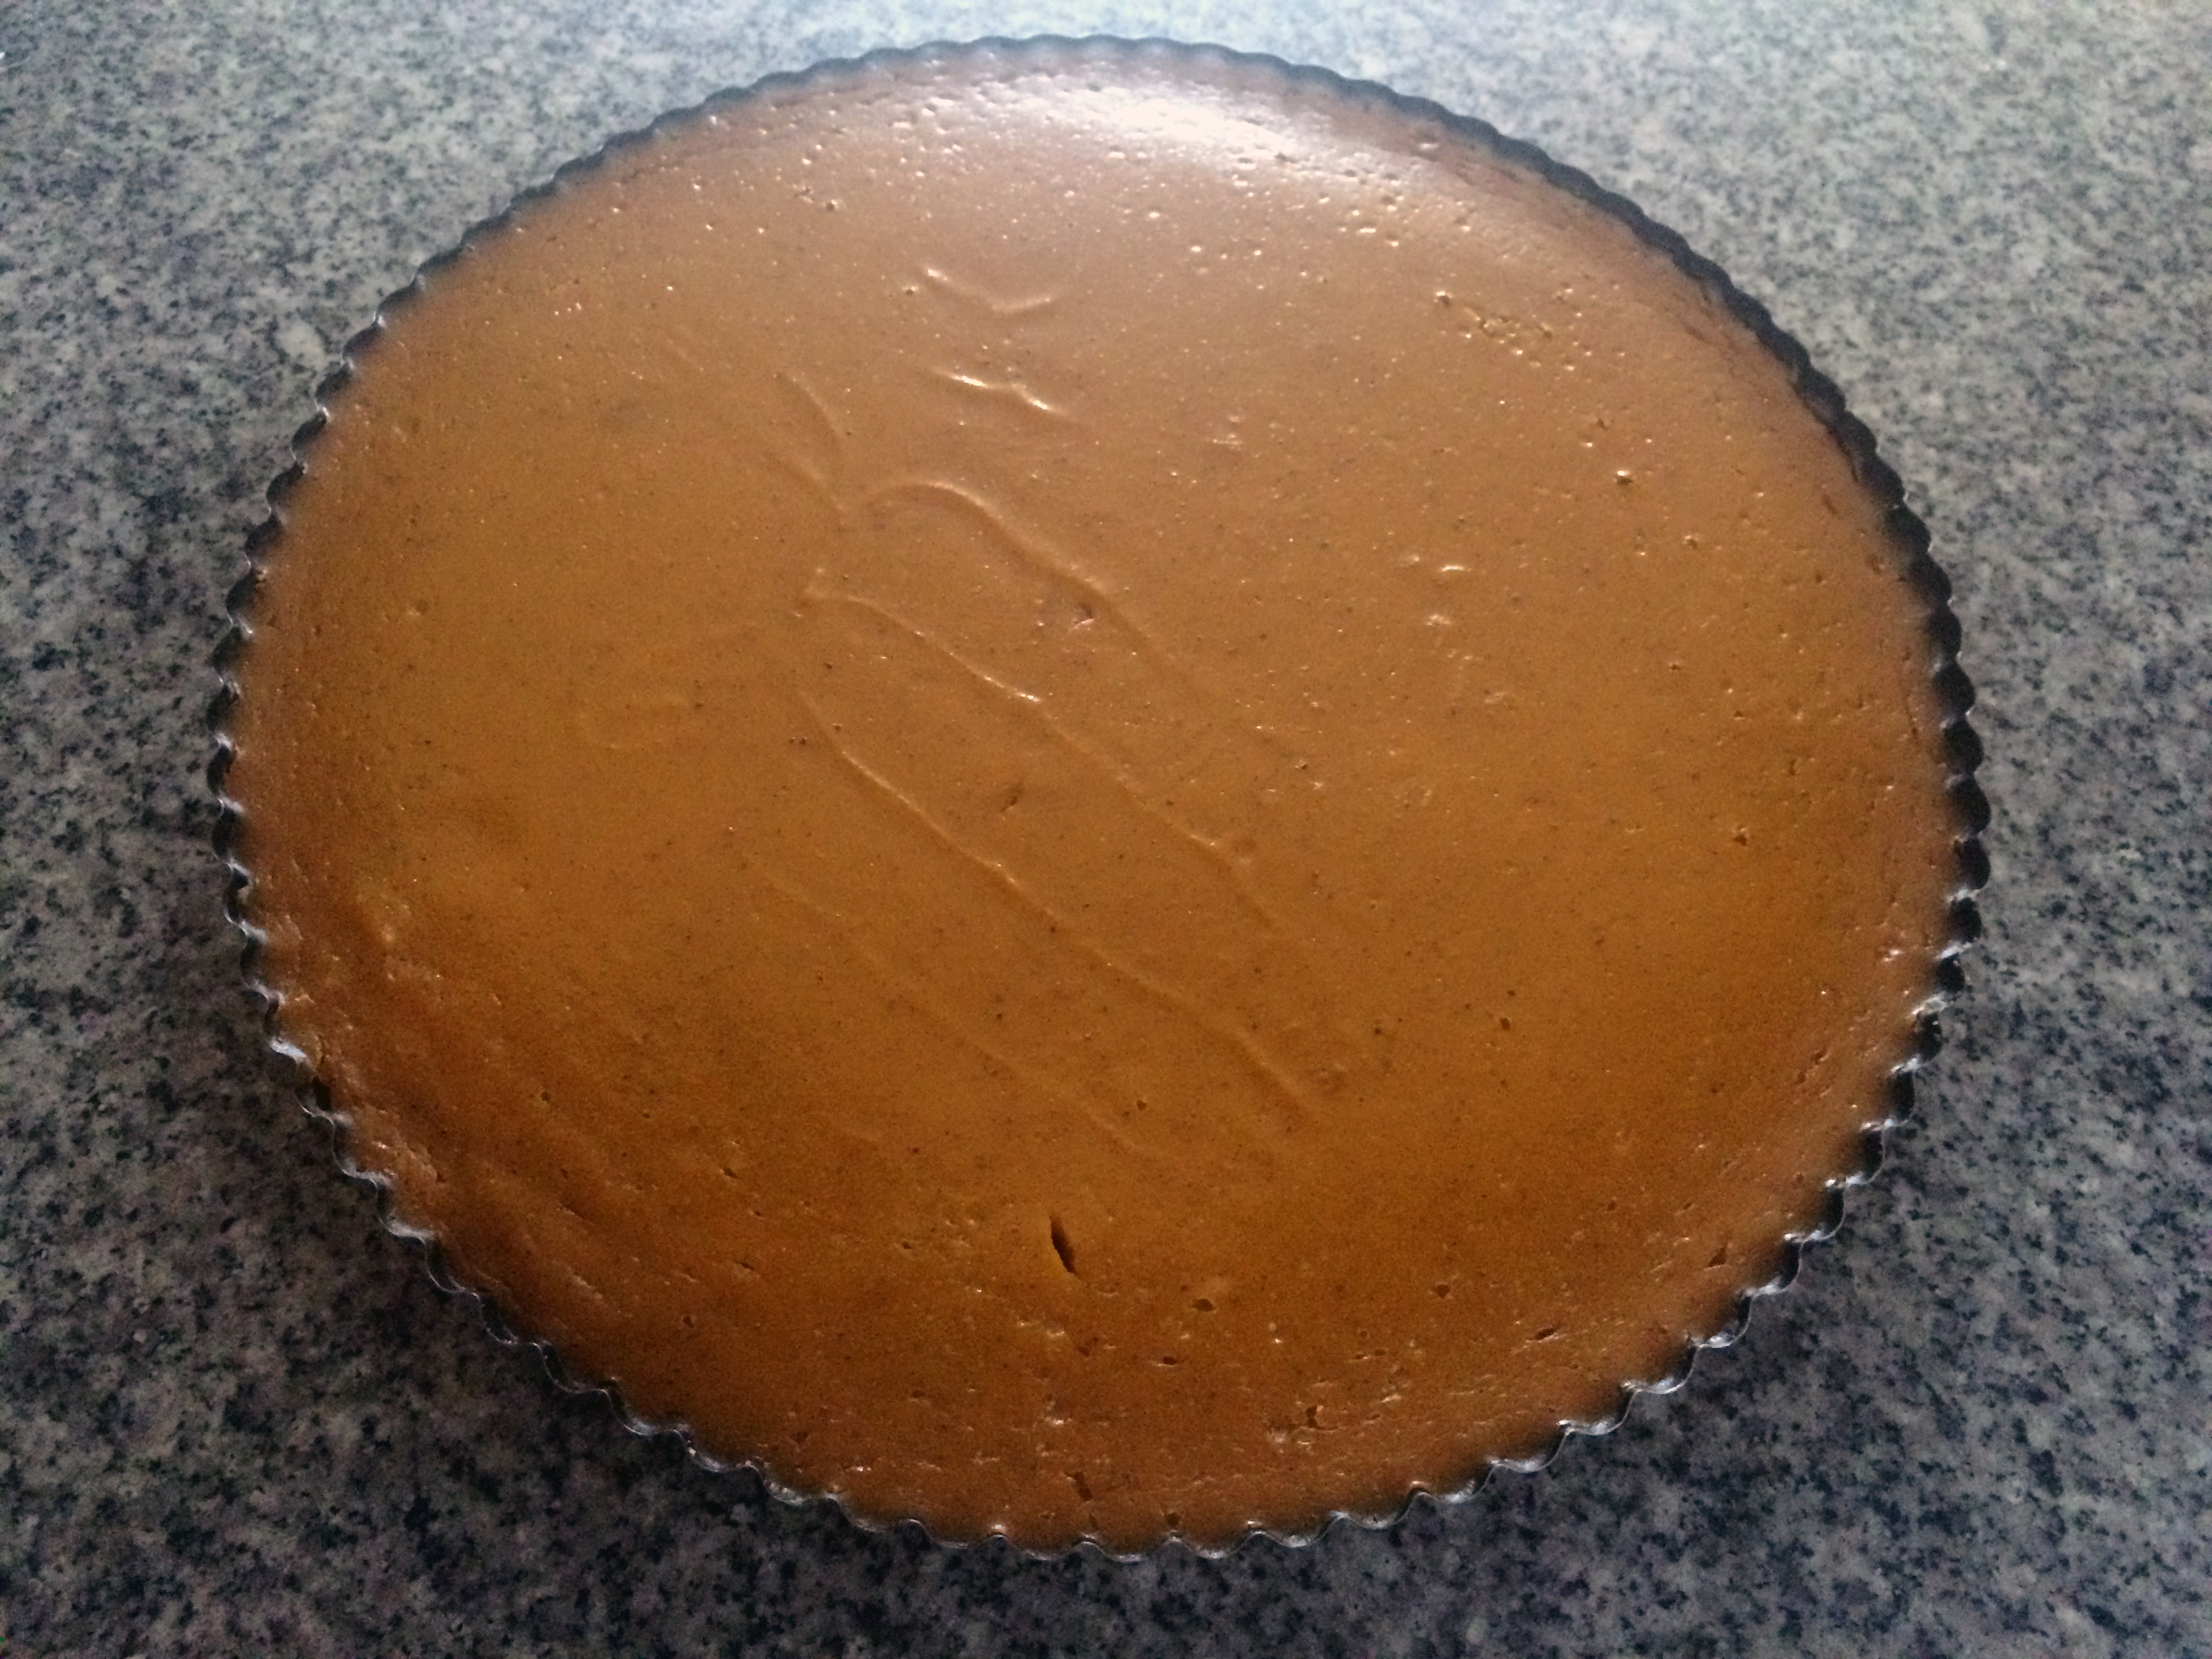 Pumpkin Pie / Pie de zapallo camote